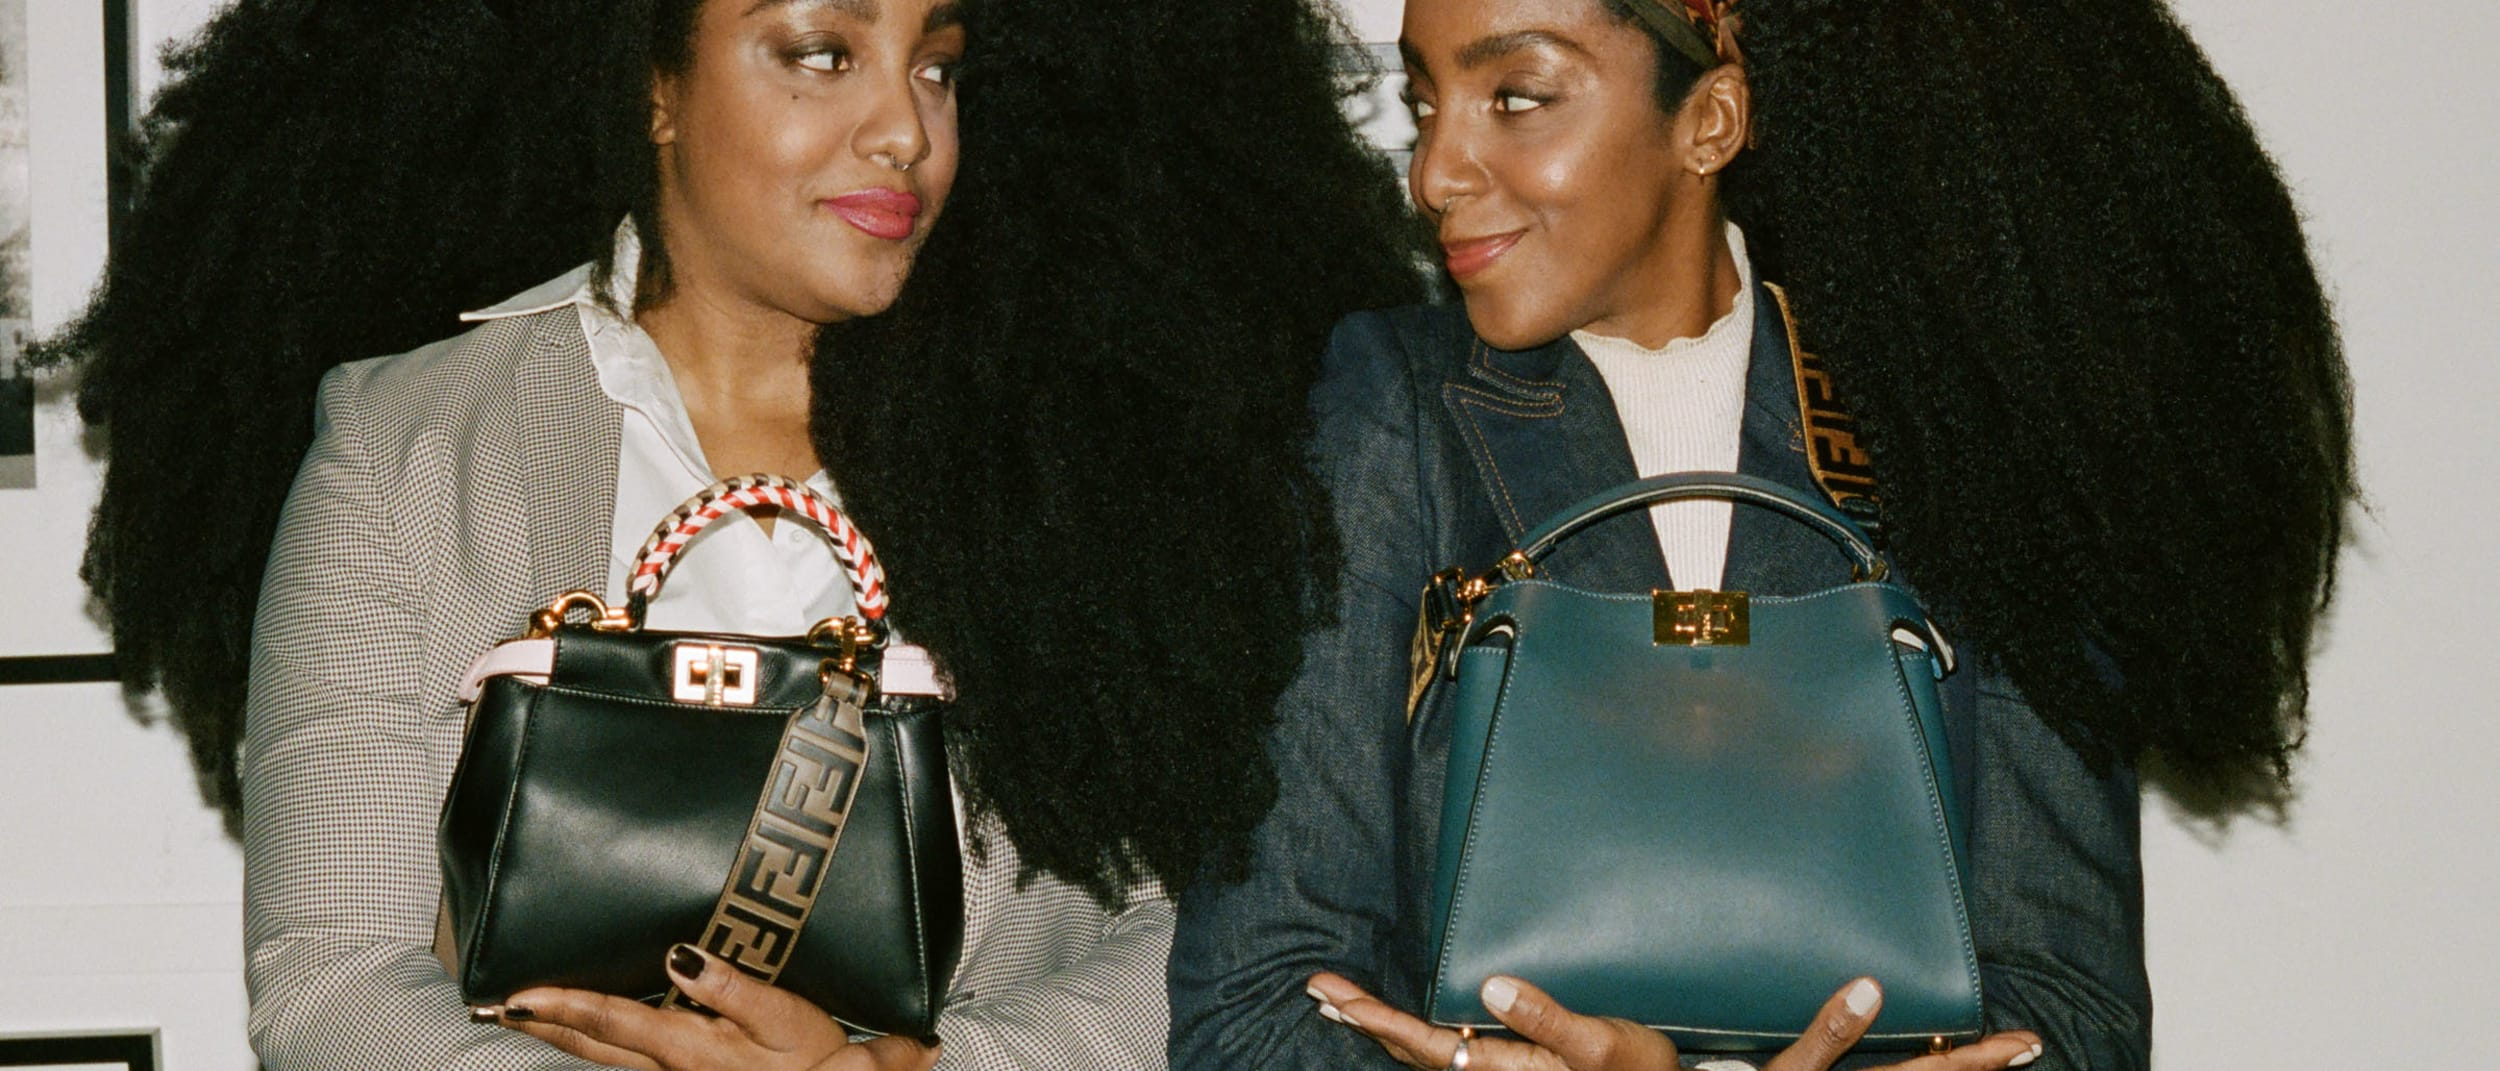 Fendi - #MeAndMyPeekaboo Chapter 2 featuring the Quann Sisters